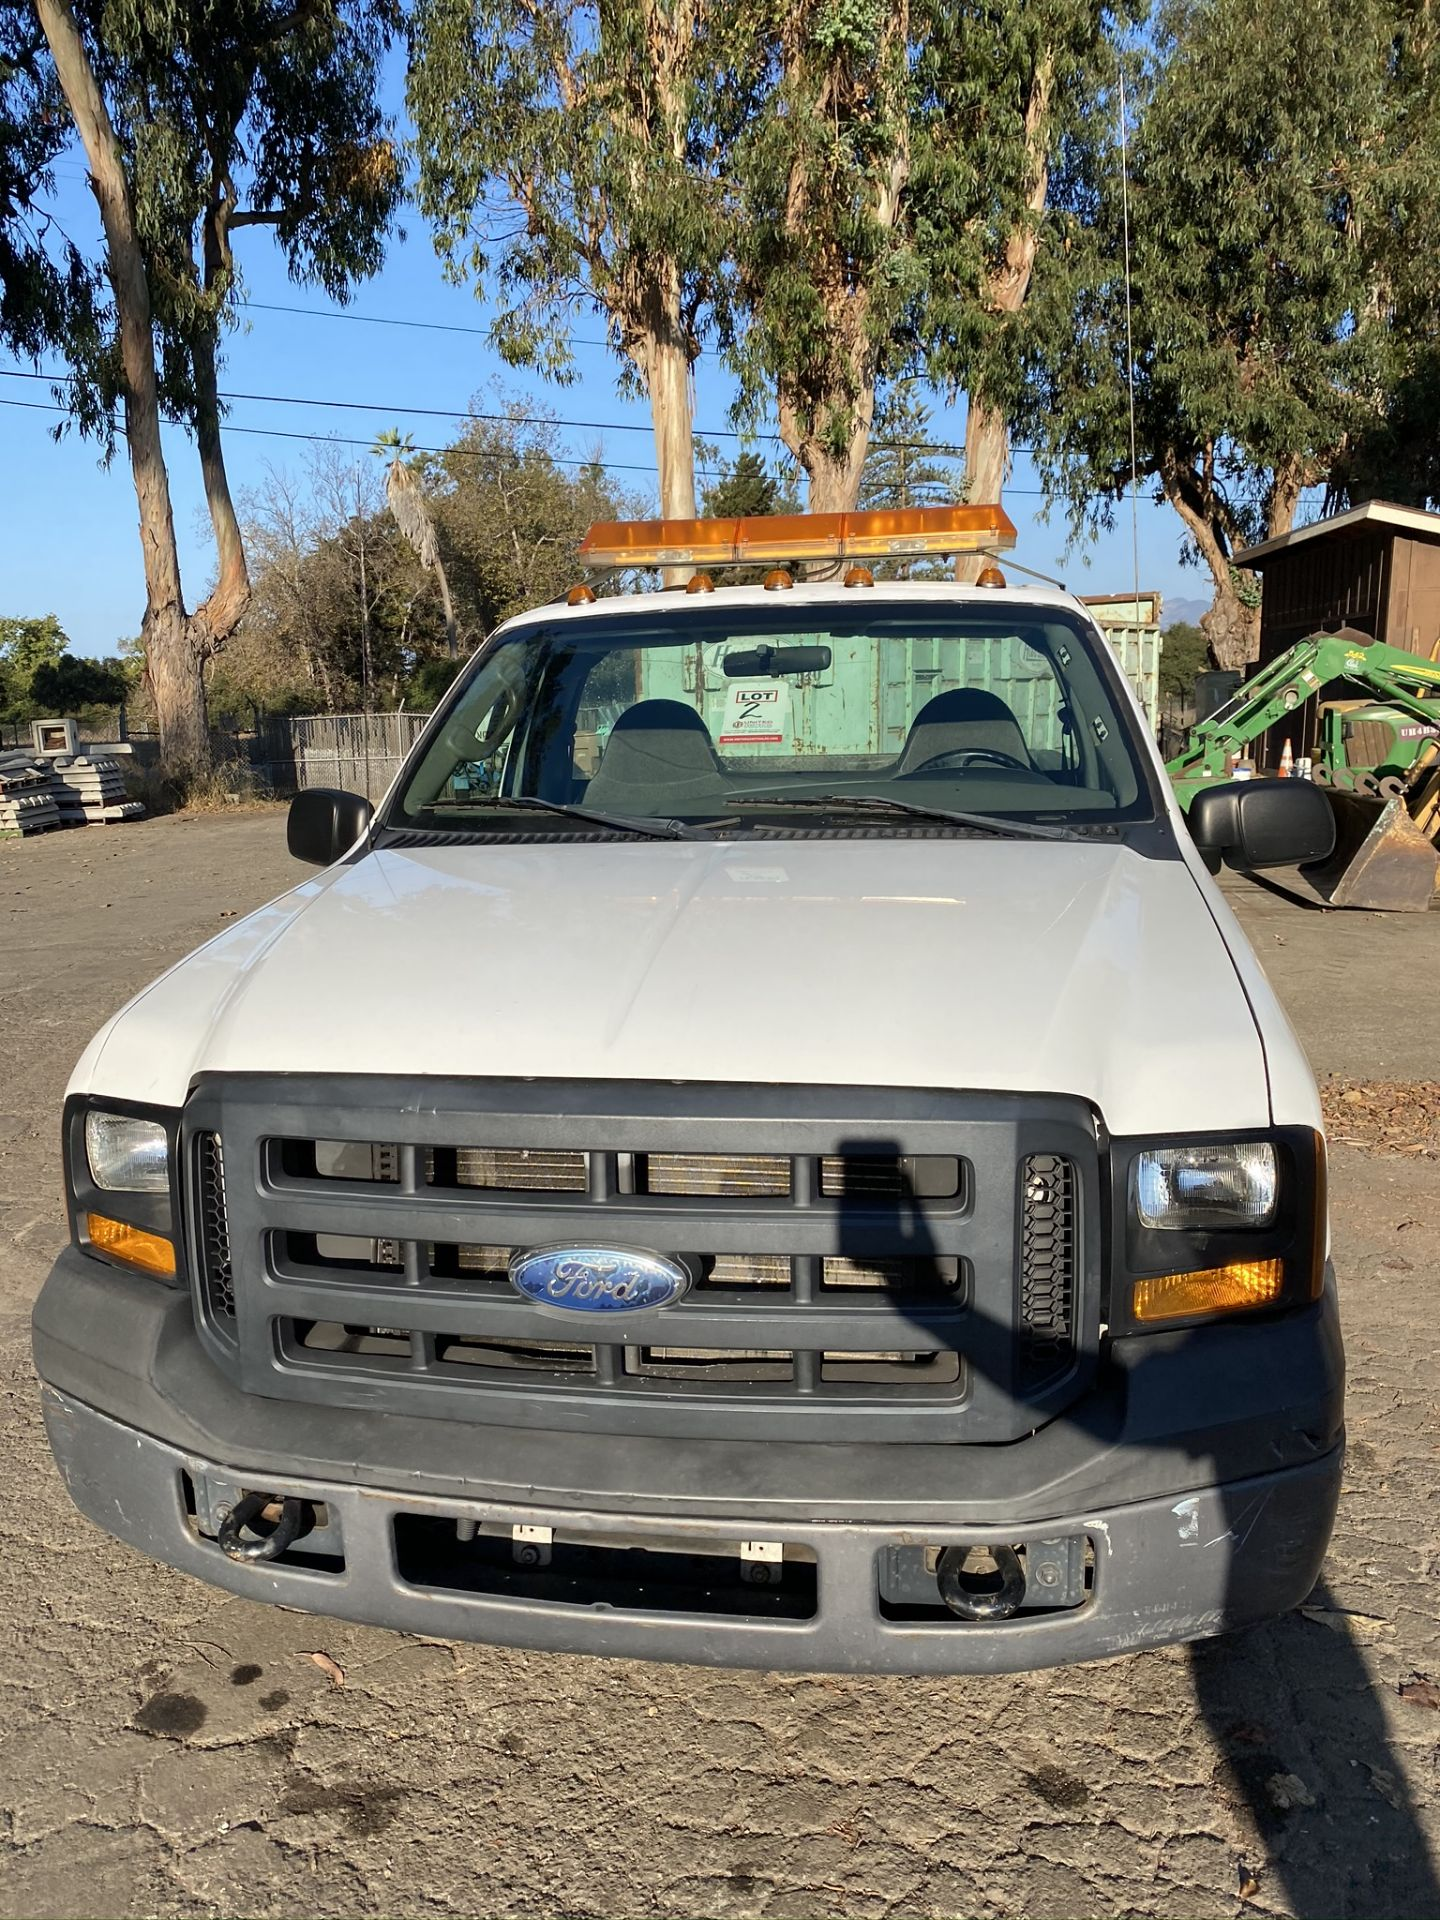 2007 FORD F-250, XL SUPER DUTY PICK UP TRUCK - Image 3 of 12